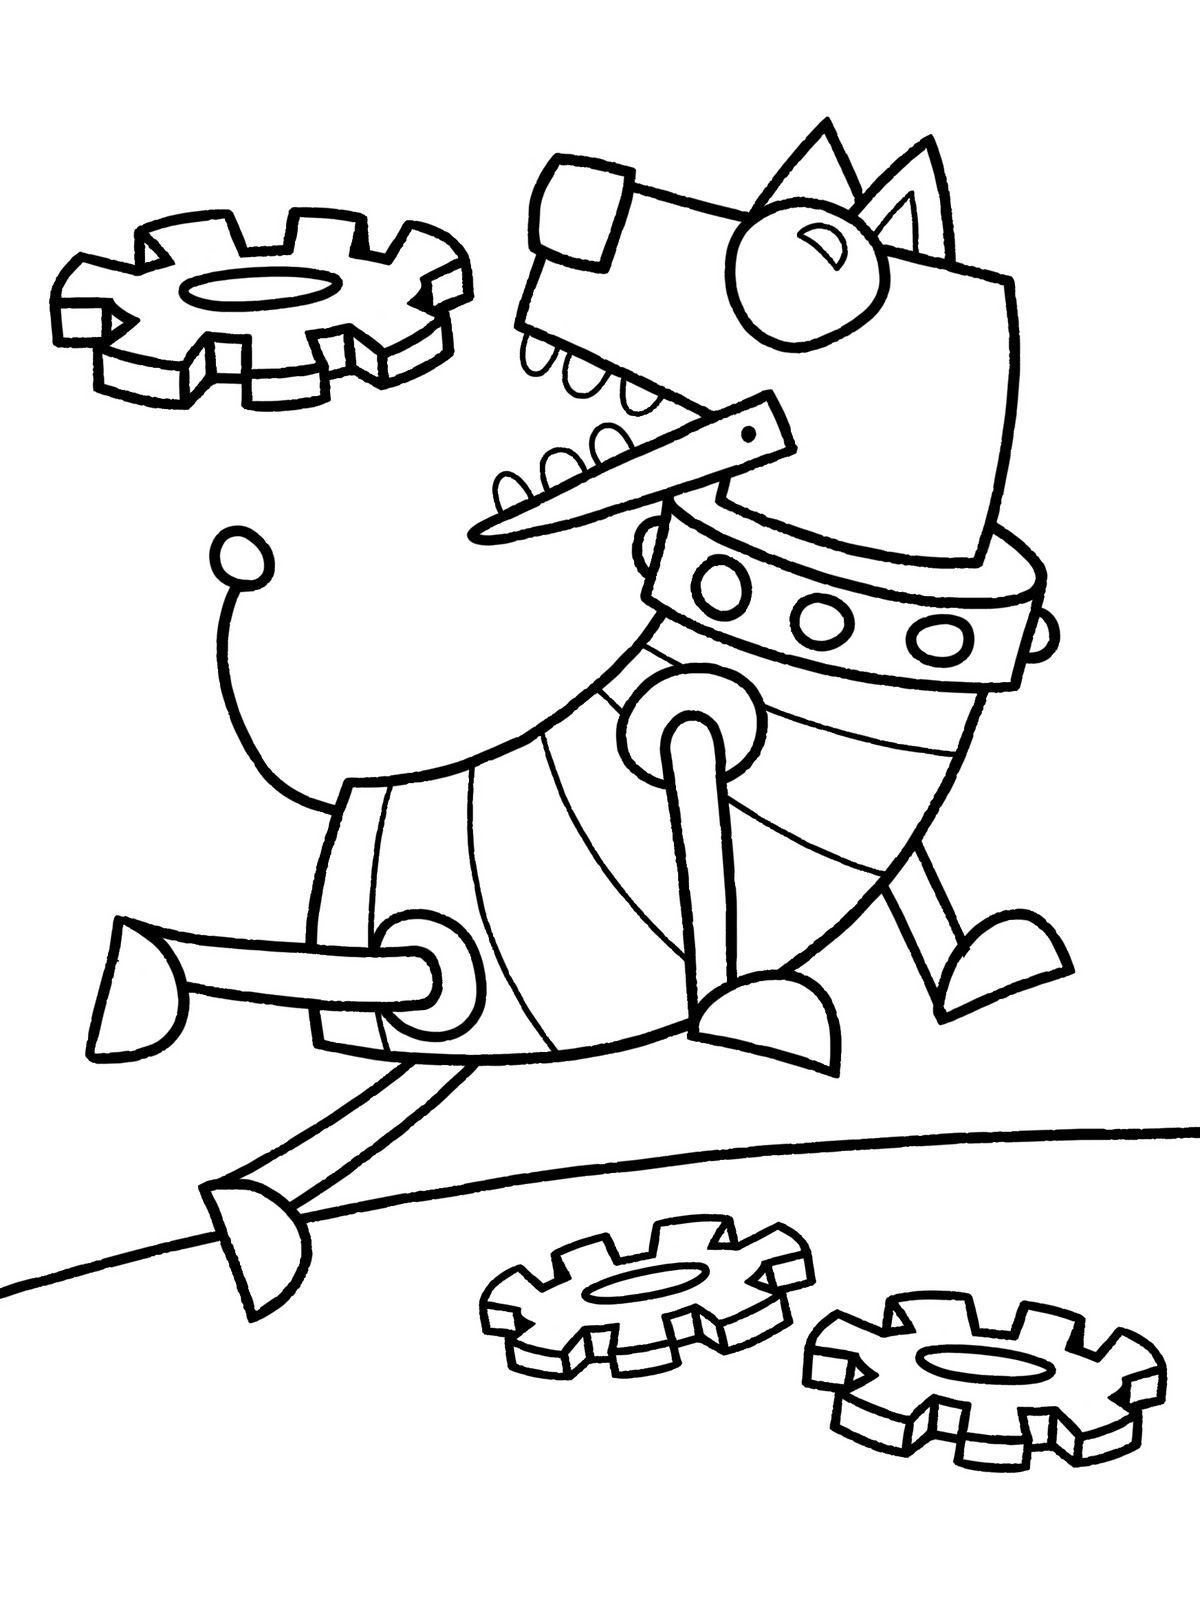 robot colouring pictures robots for children robots kids coloring pages colouring robot pictures